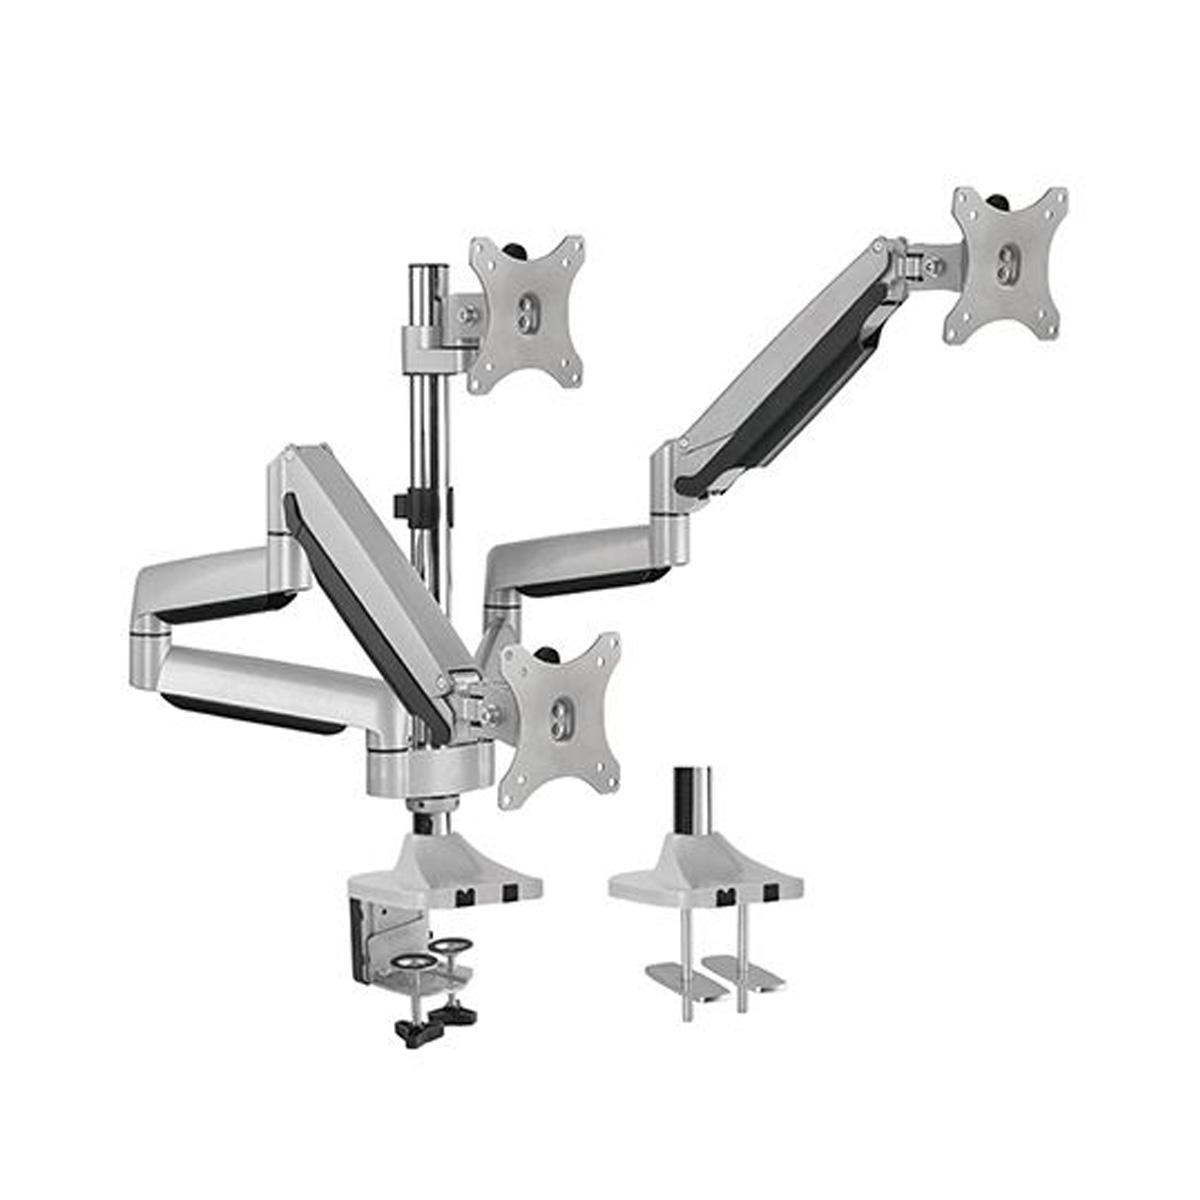 dm-1332TriM Triple Mount